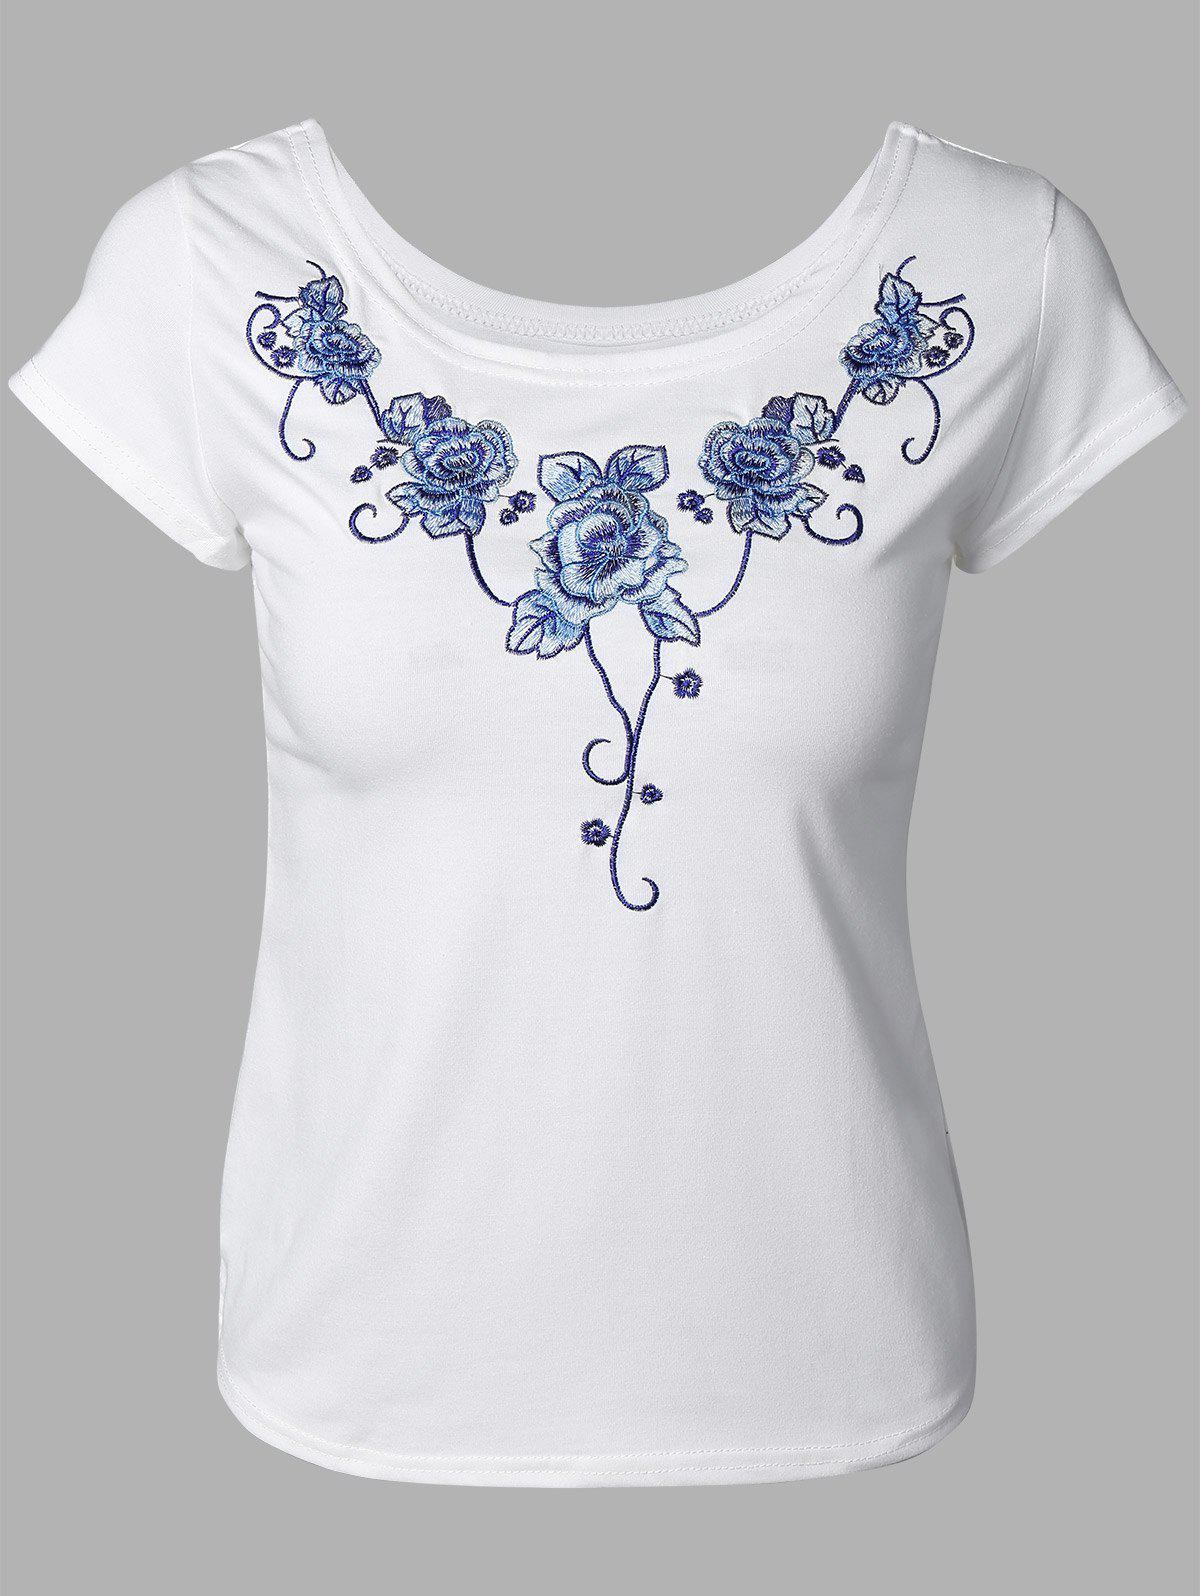 Elegant Floral Embroidery Tee